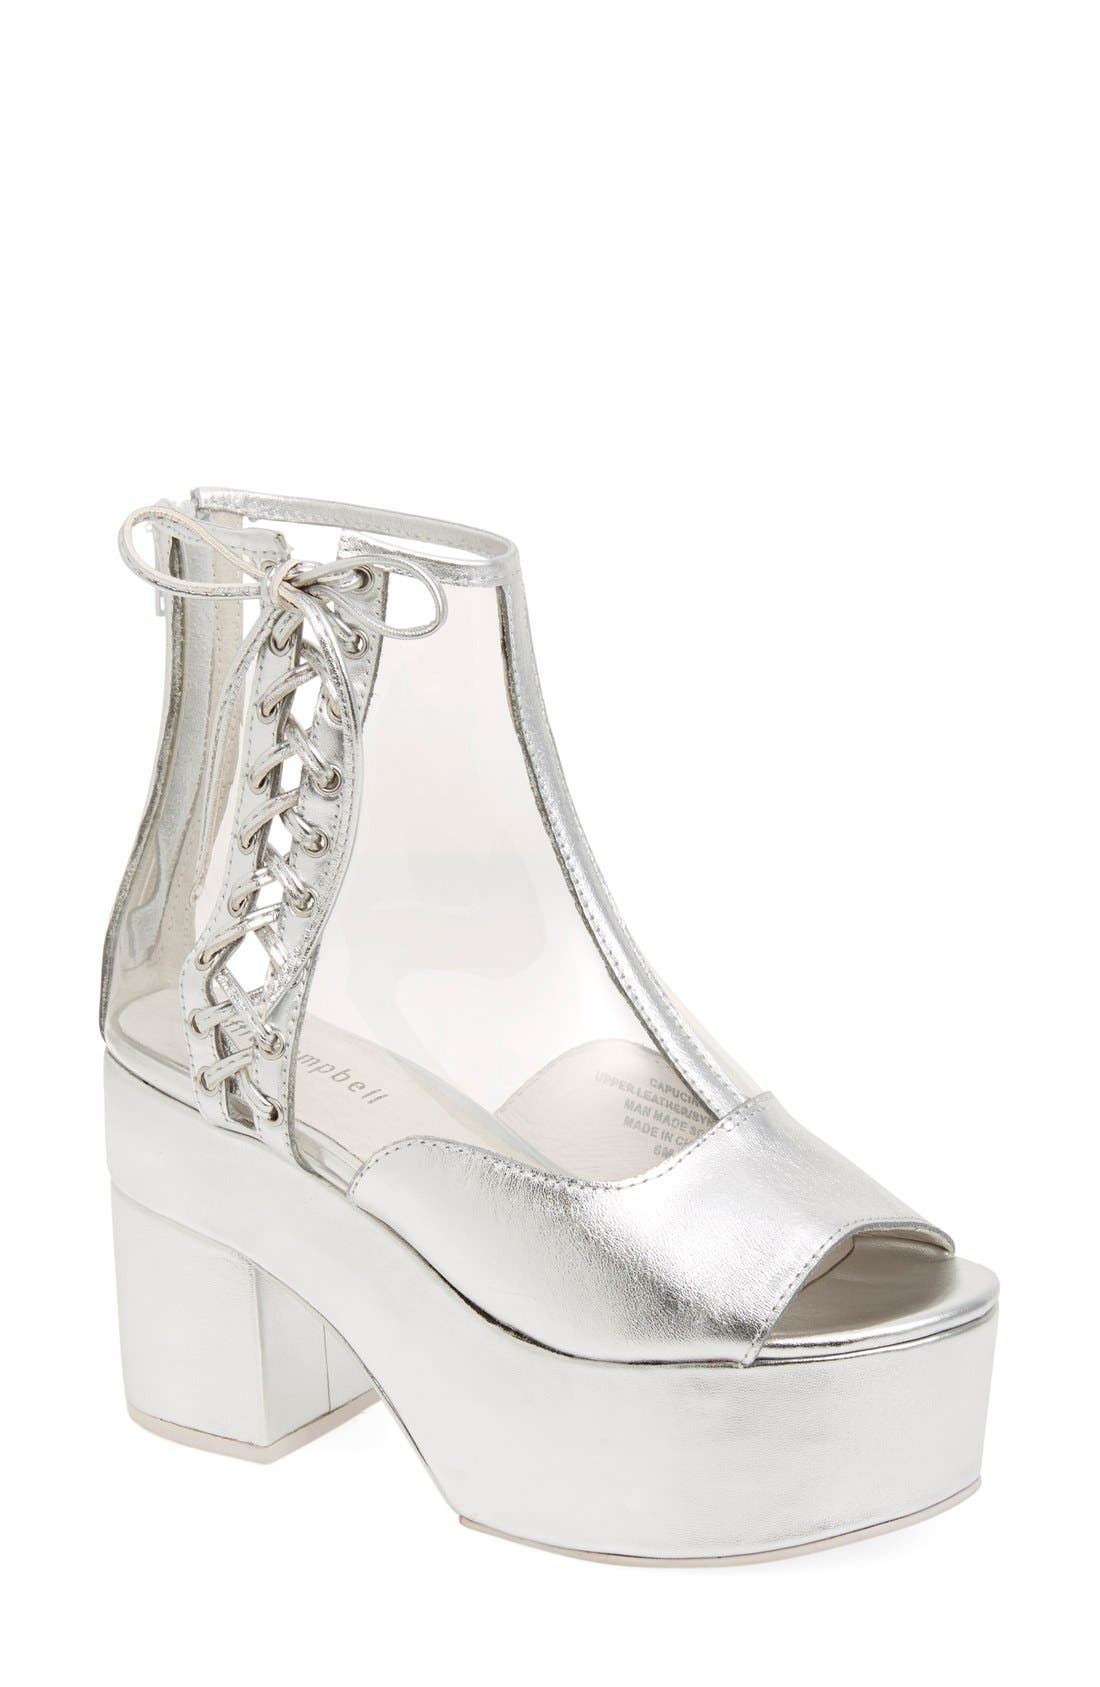 Alternate Image 1 Selected - Jeffrey Campbell 'Capucine' Platform Bootie (Women)